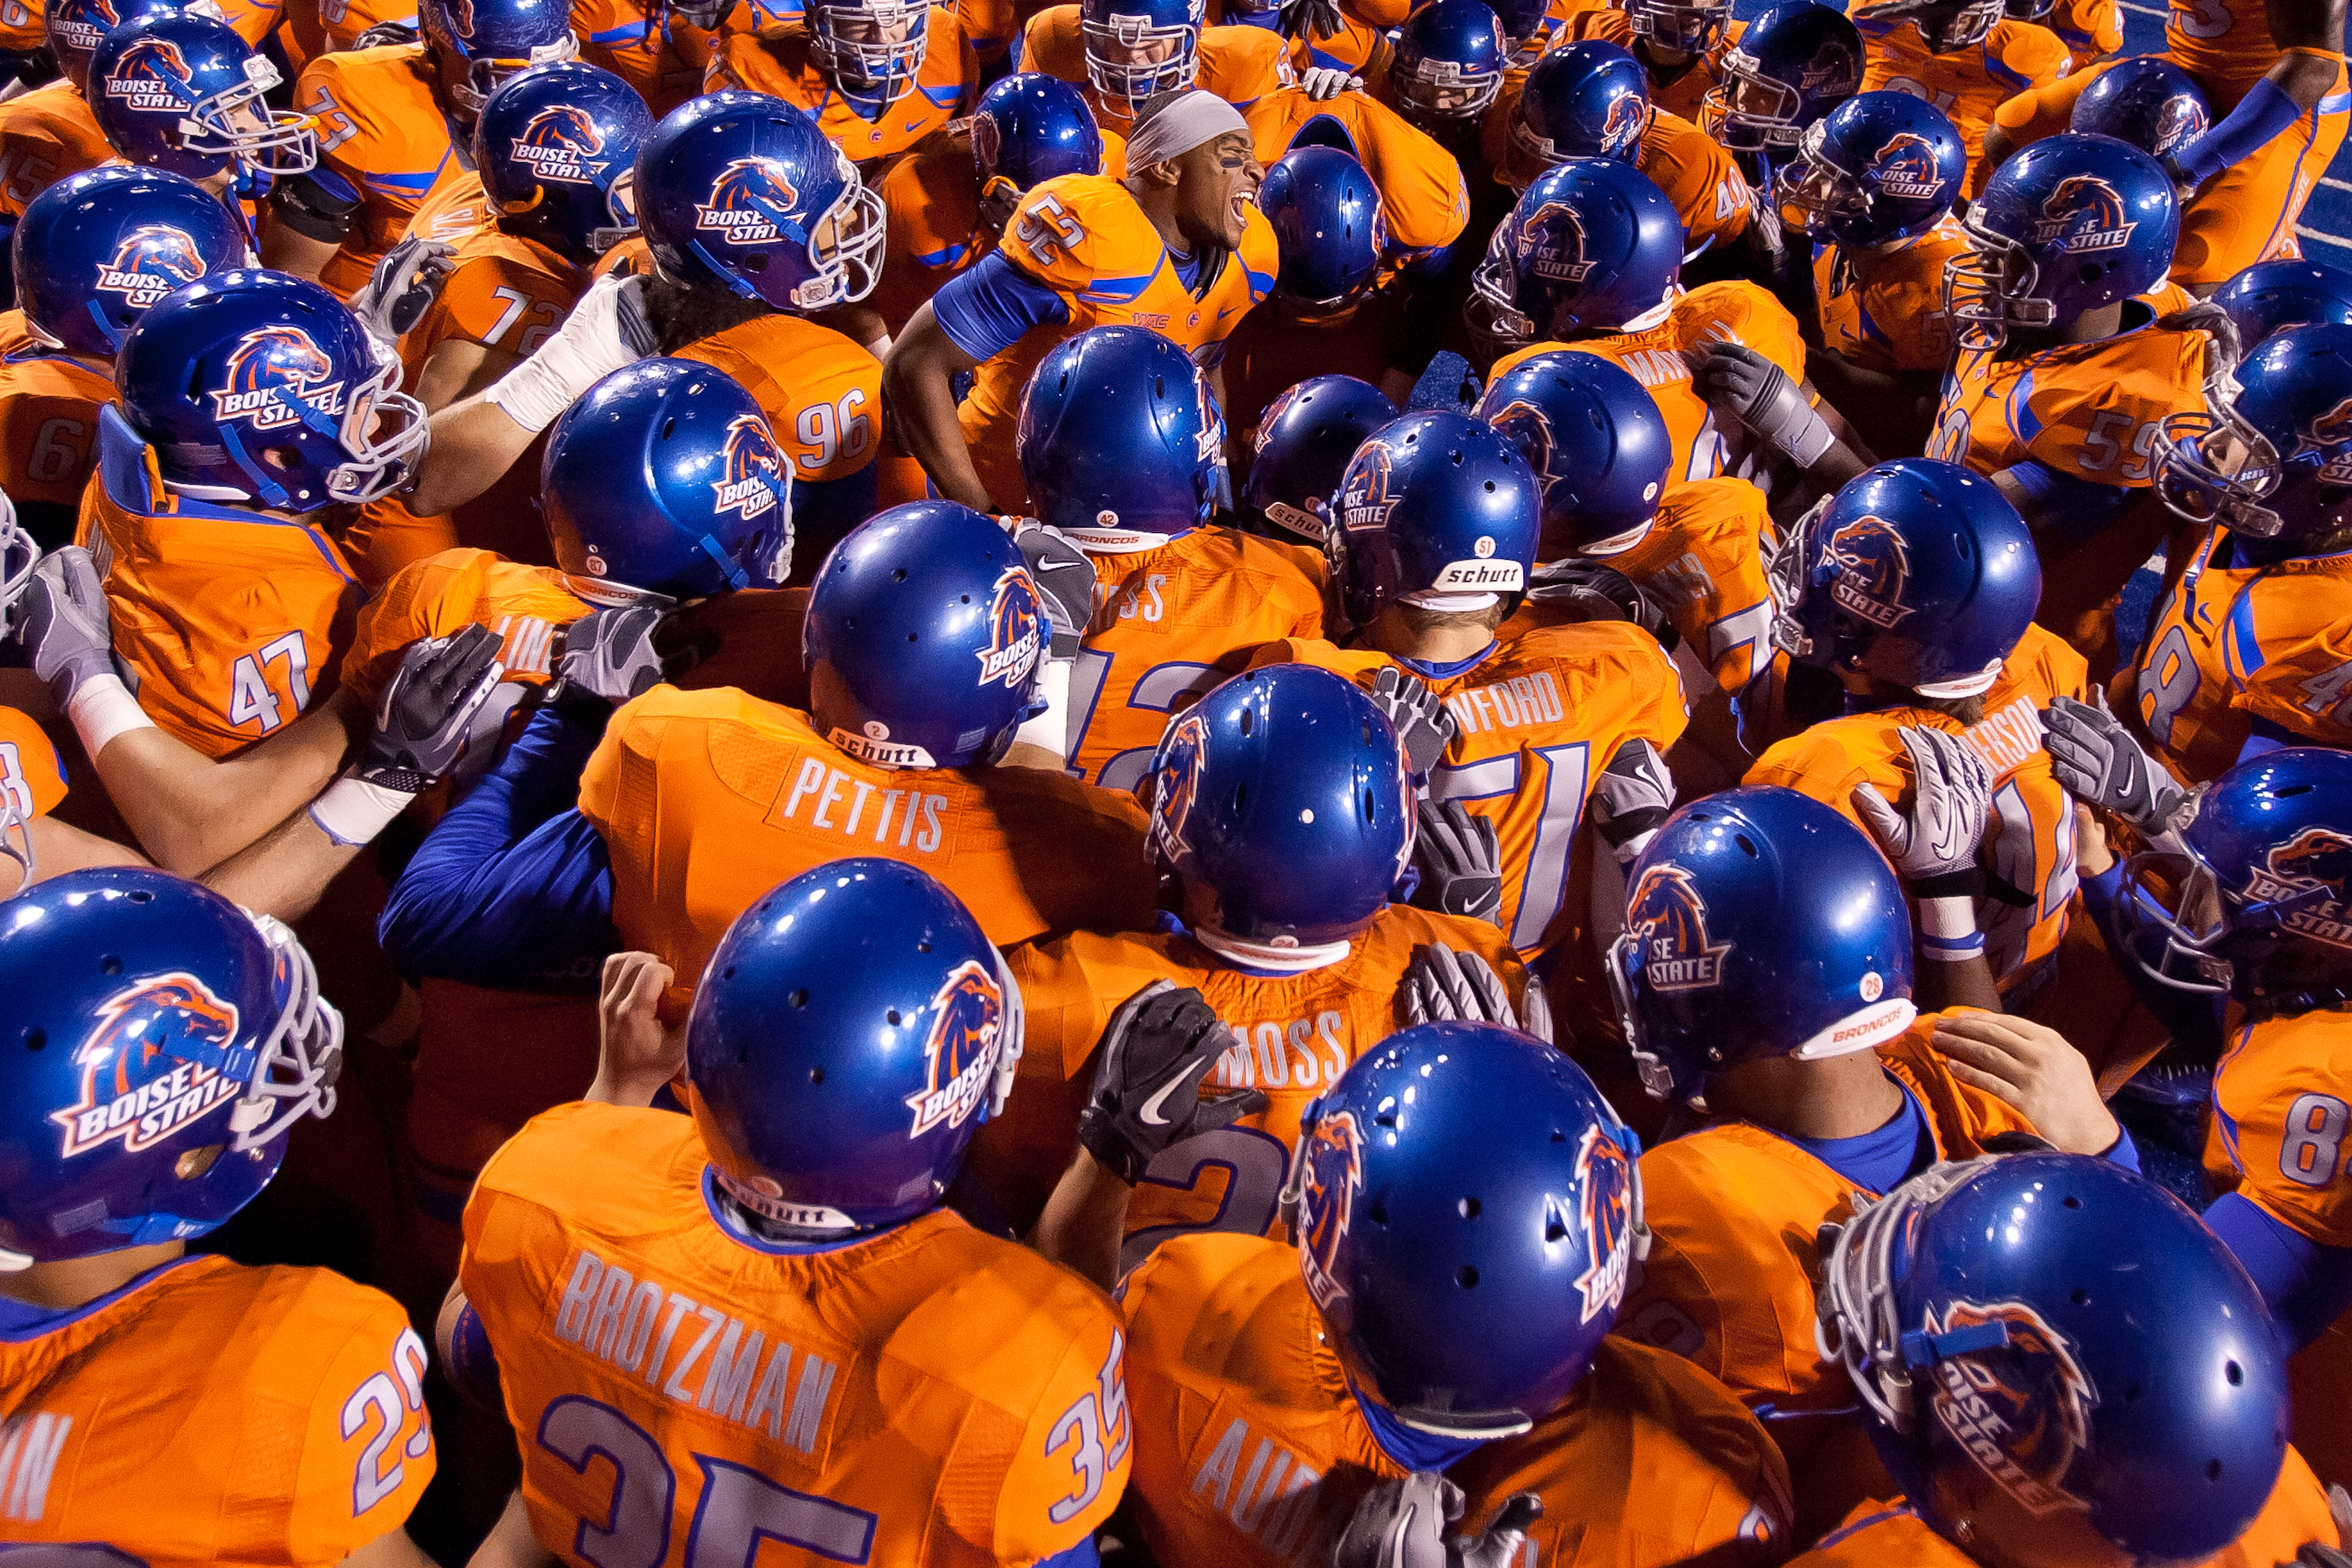 BOISE, ID - NOVEMBER 19:  Derrell Acrey #52 psyches up the Boise State Broncos before the game against the Fresno State Bulldogs at Bronco Stadium on November 19, 2010 in Boise, Idaho.  (Photo by Otto Kitsinger III/Getty Images)